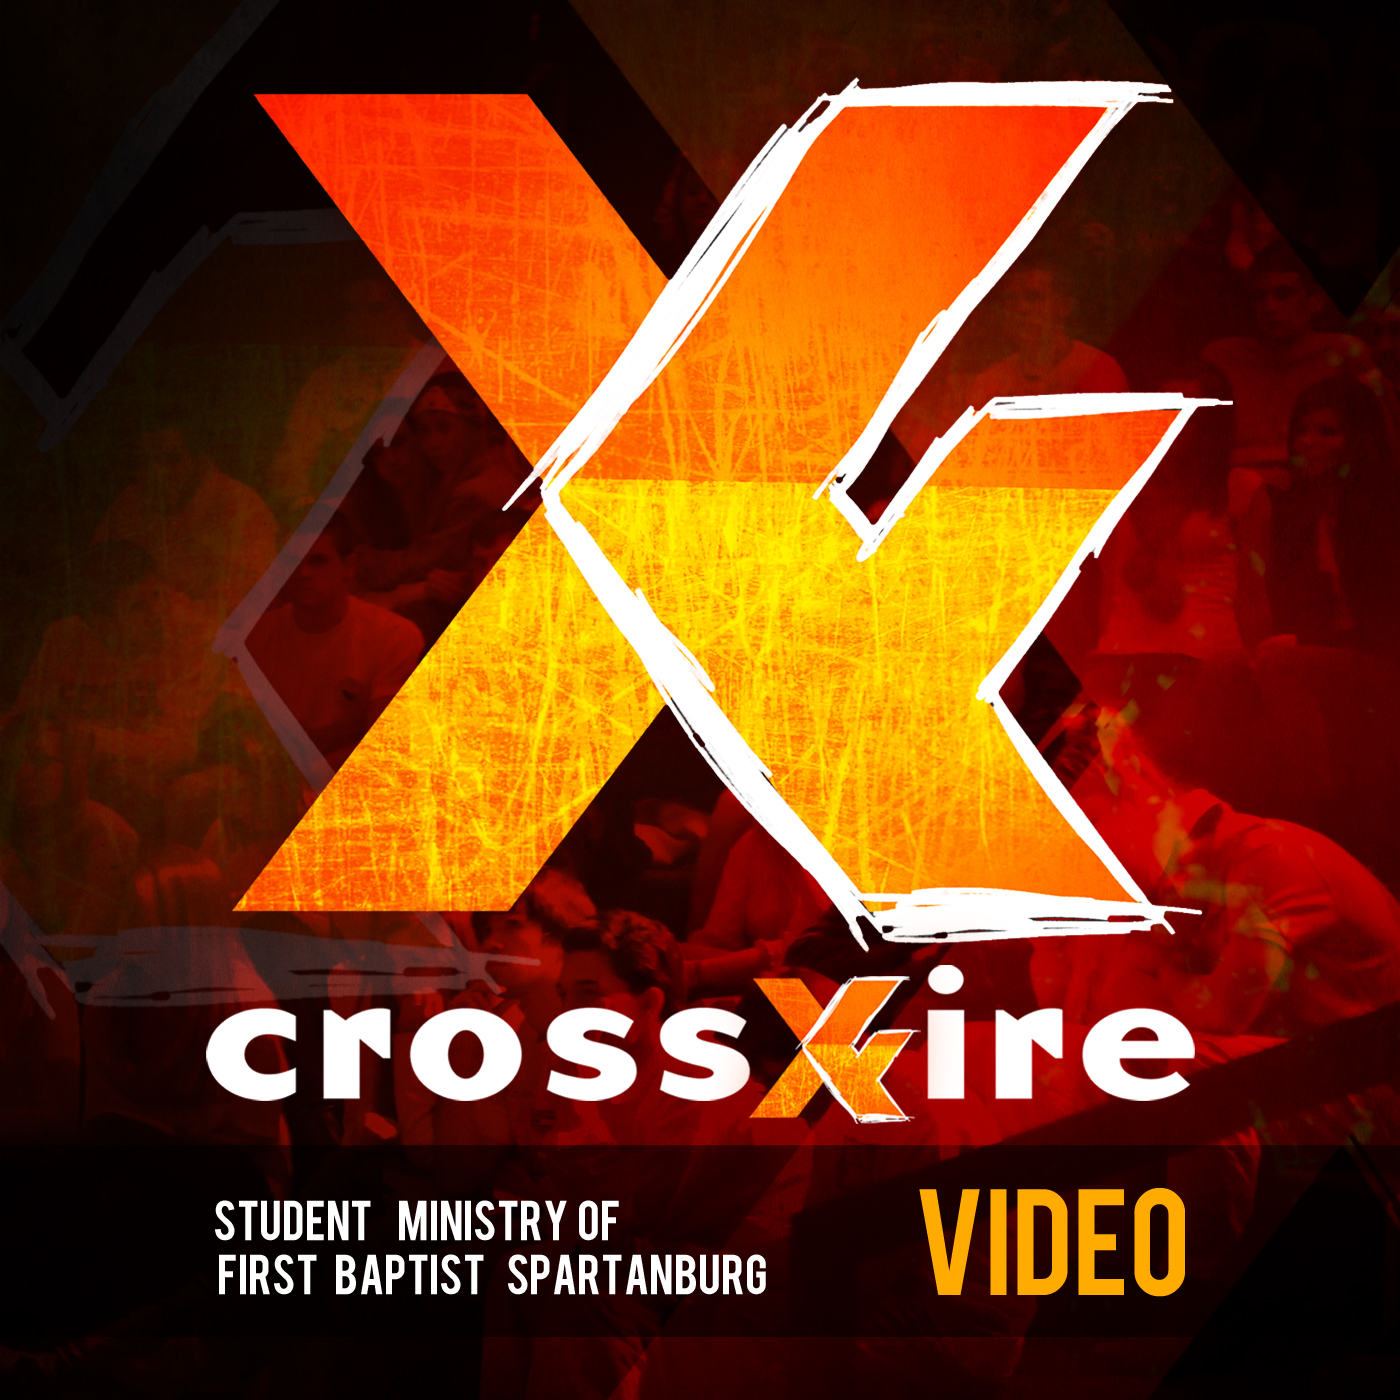 Crossfire at FBS - Video